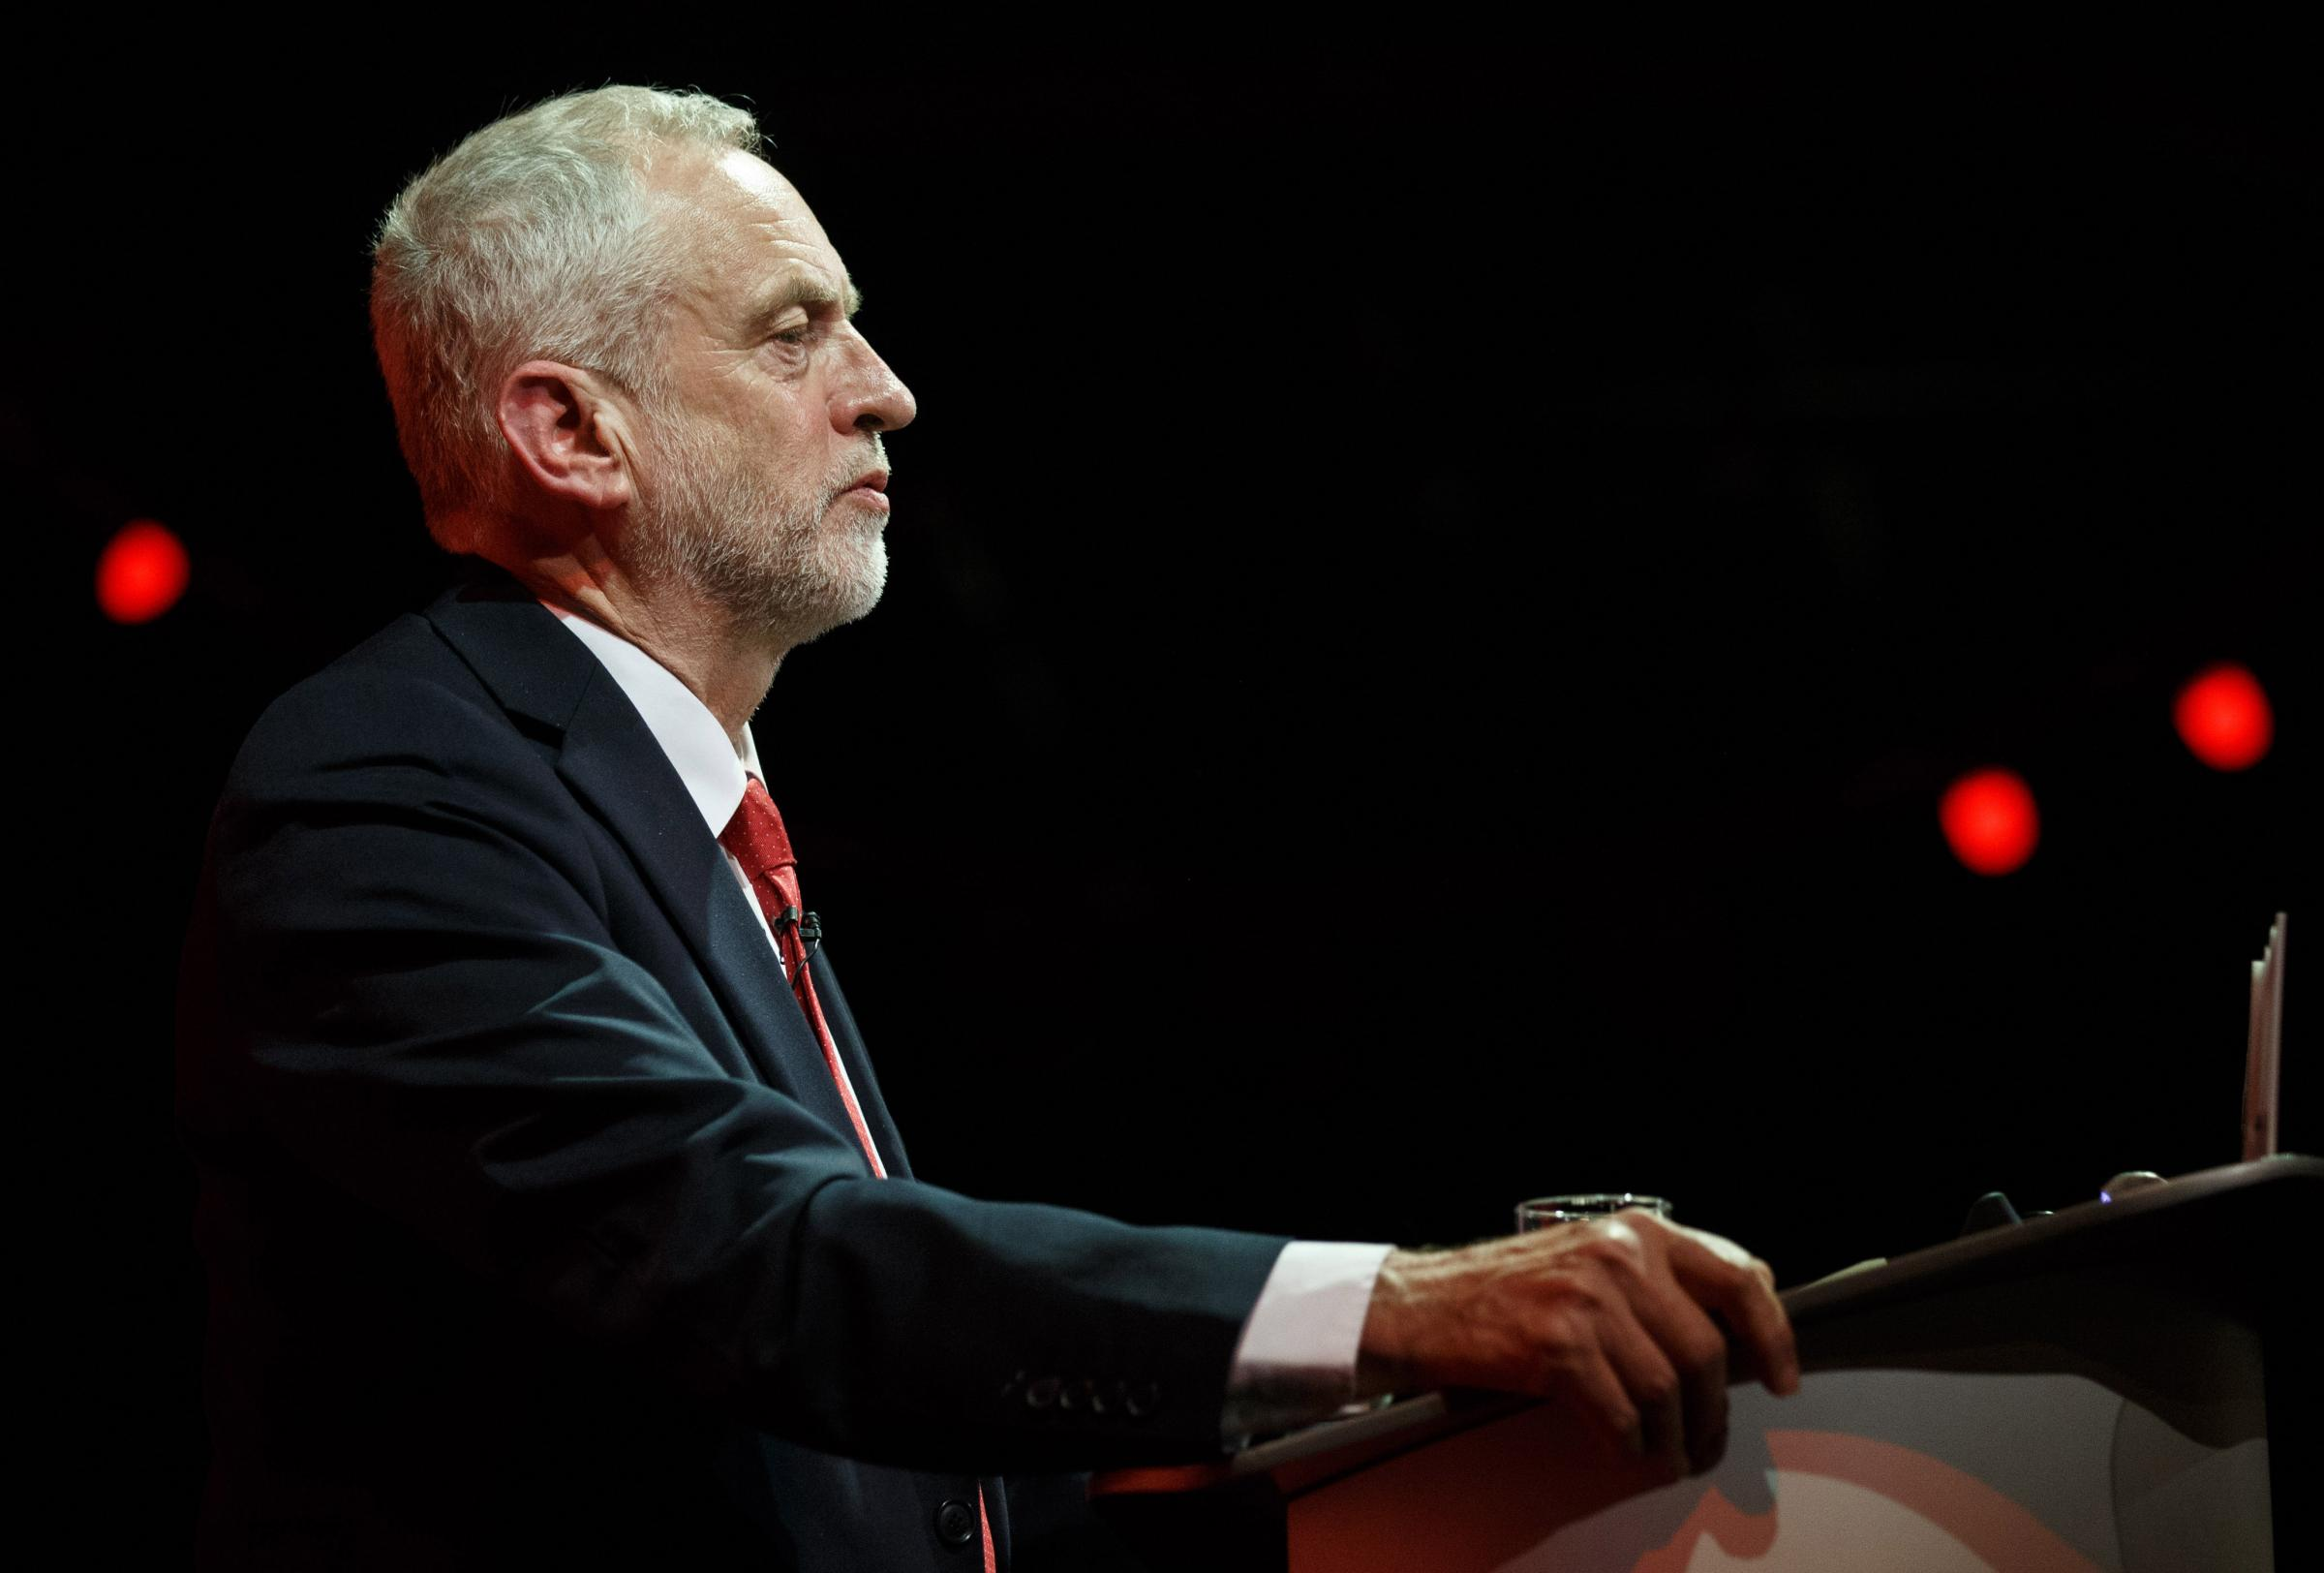 Jeremy Corbyn said he would 'obviously open discussions' with Sturgeon